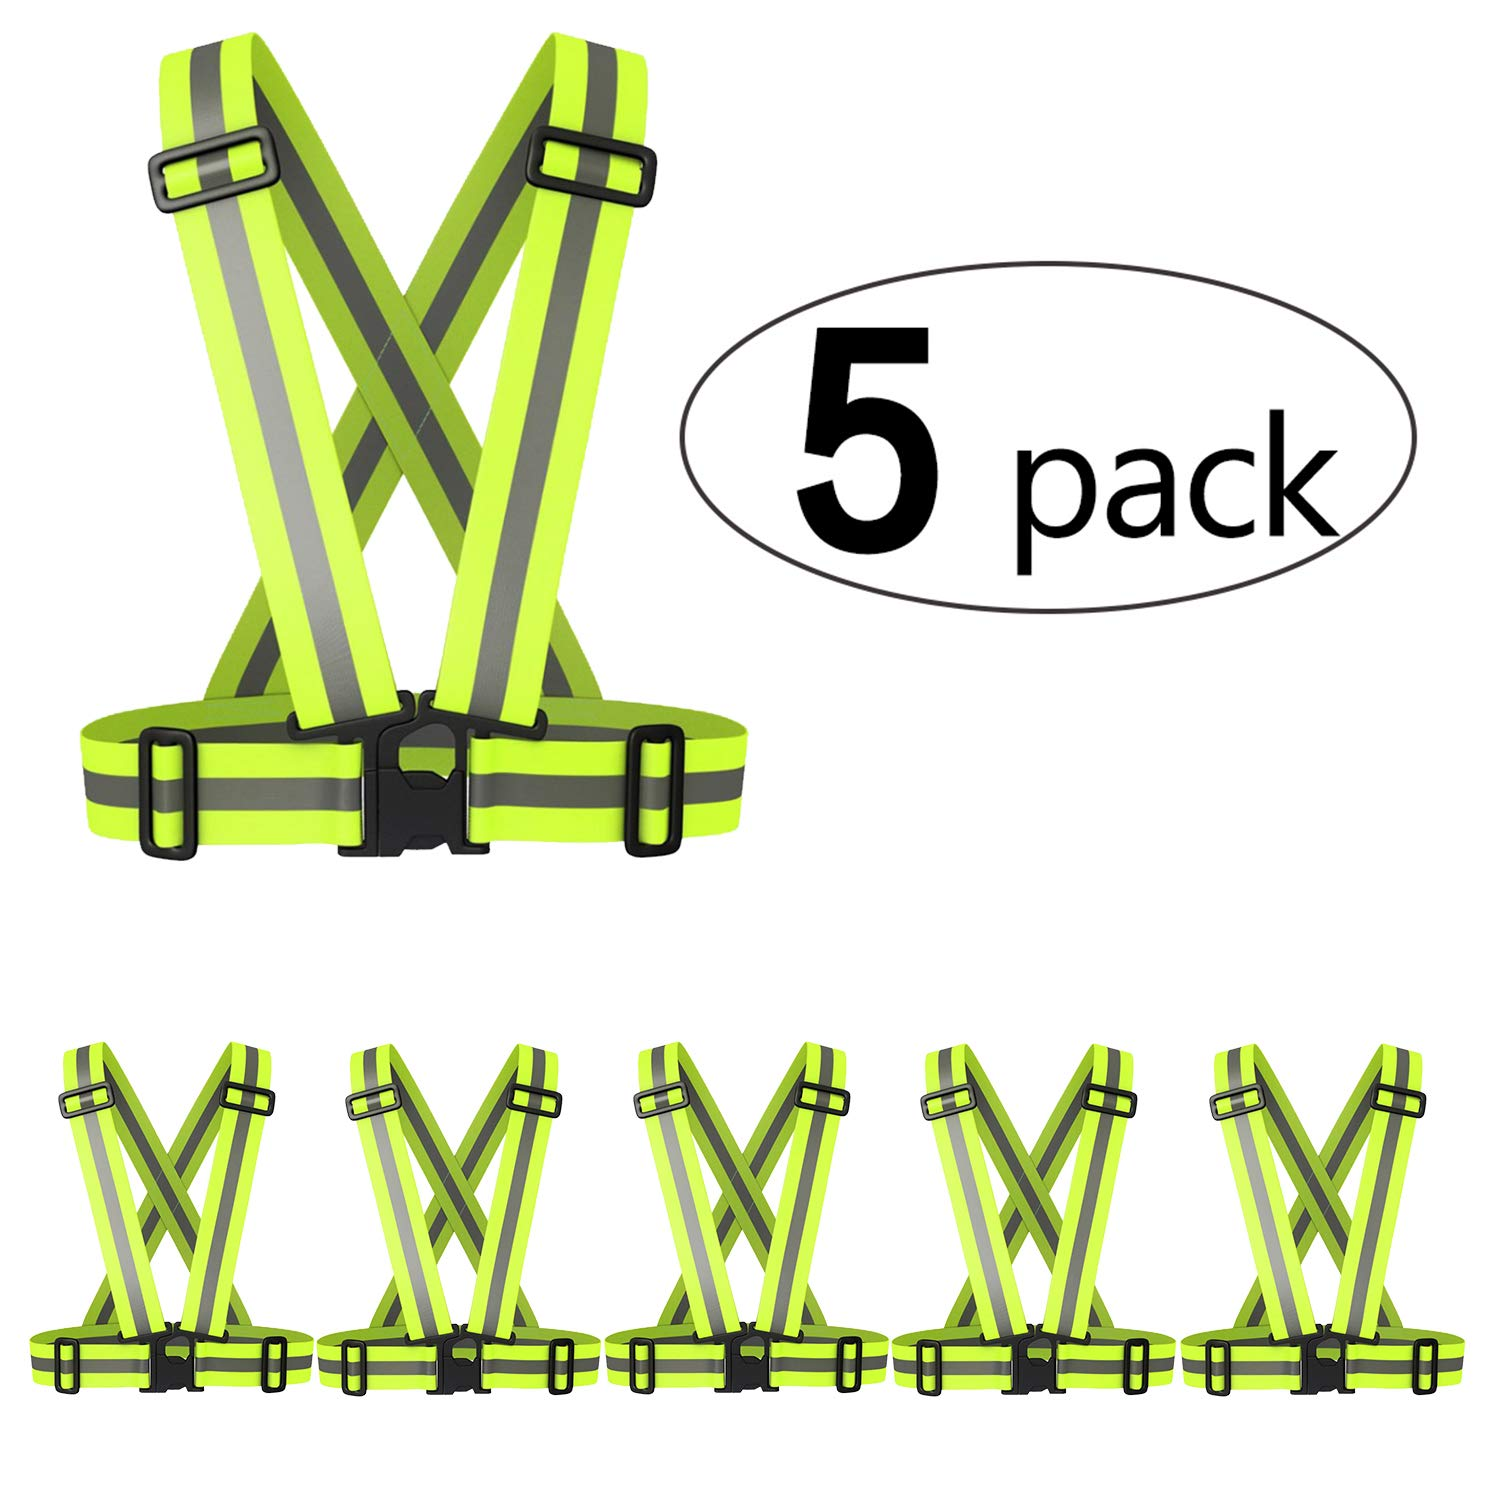 5 Pack Reflective Vest Lightweight Adjustable Safety Vest Running Vest Fully Adjustable & Multi-Purpose: Running, Cycling, Motorcycle Safety, Dog Walking - High Visibility Neon Green/Orange